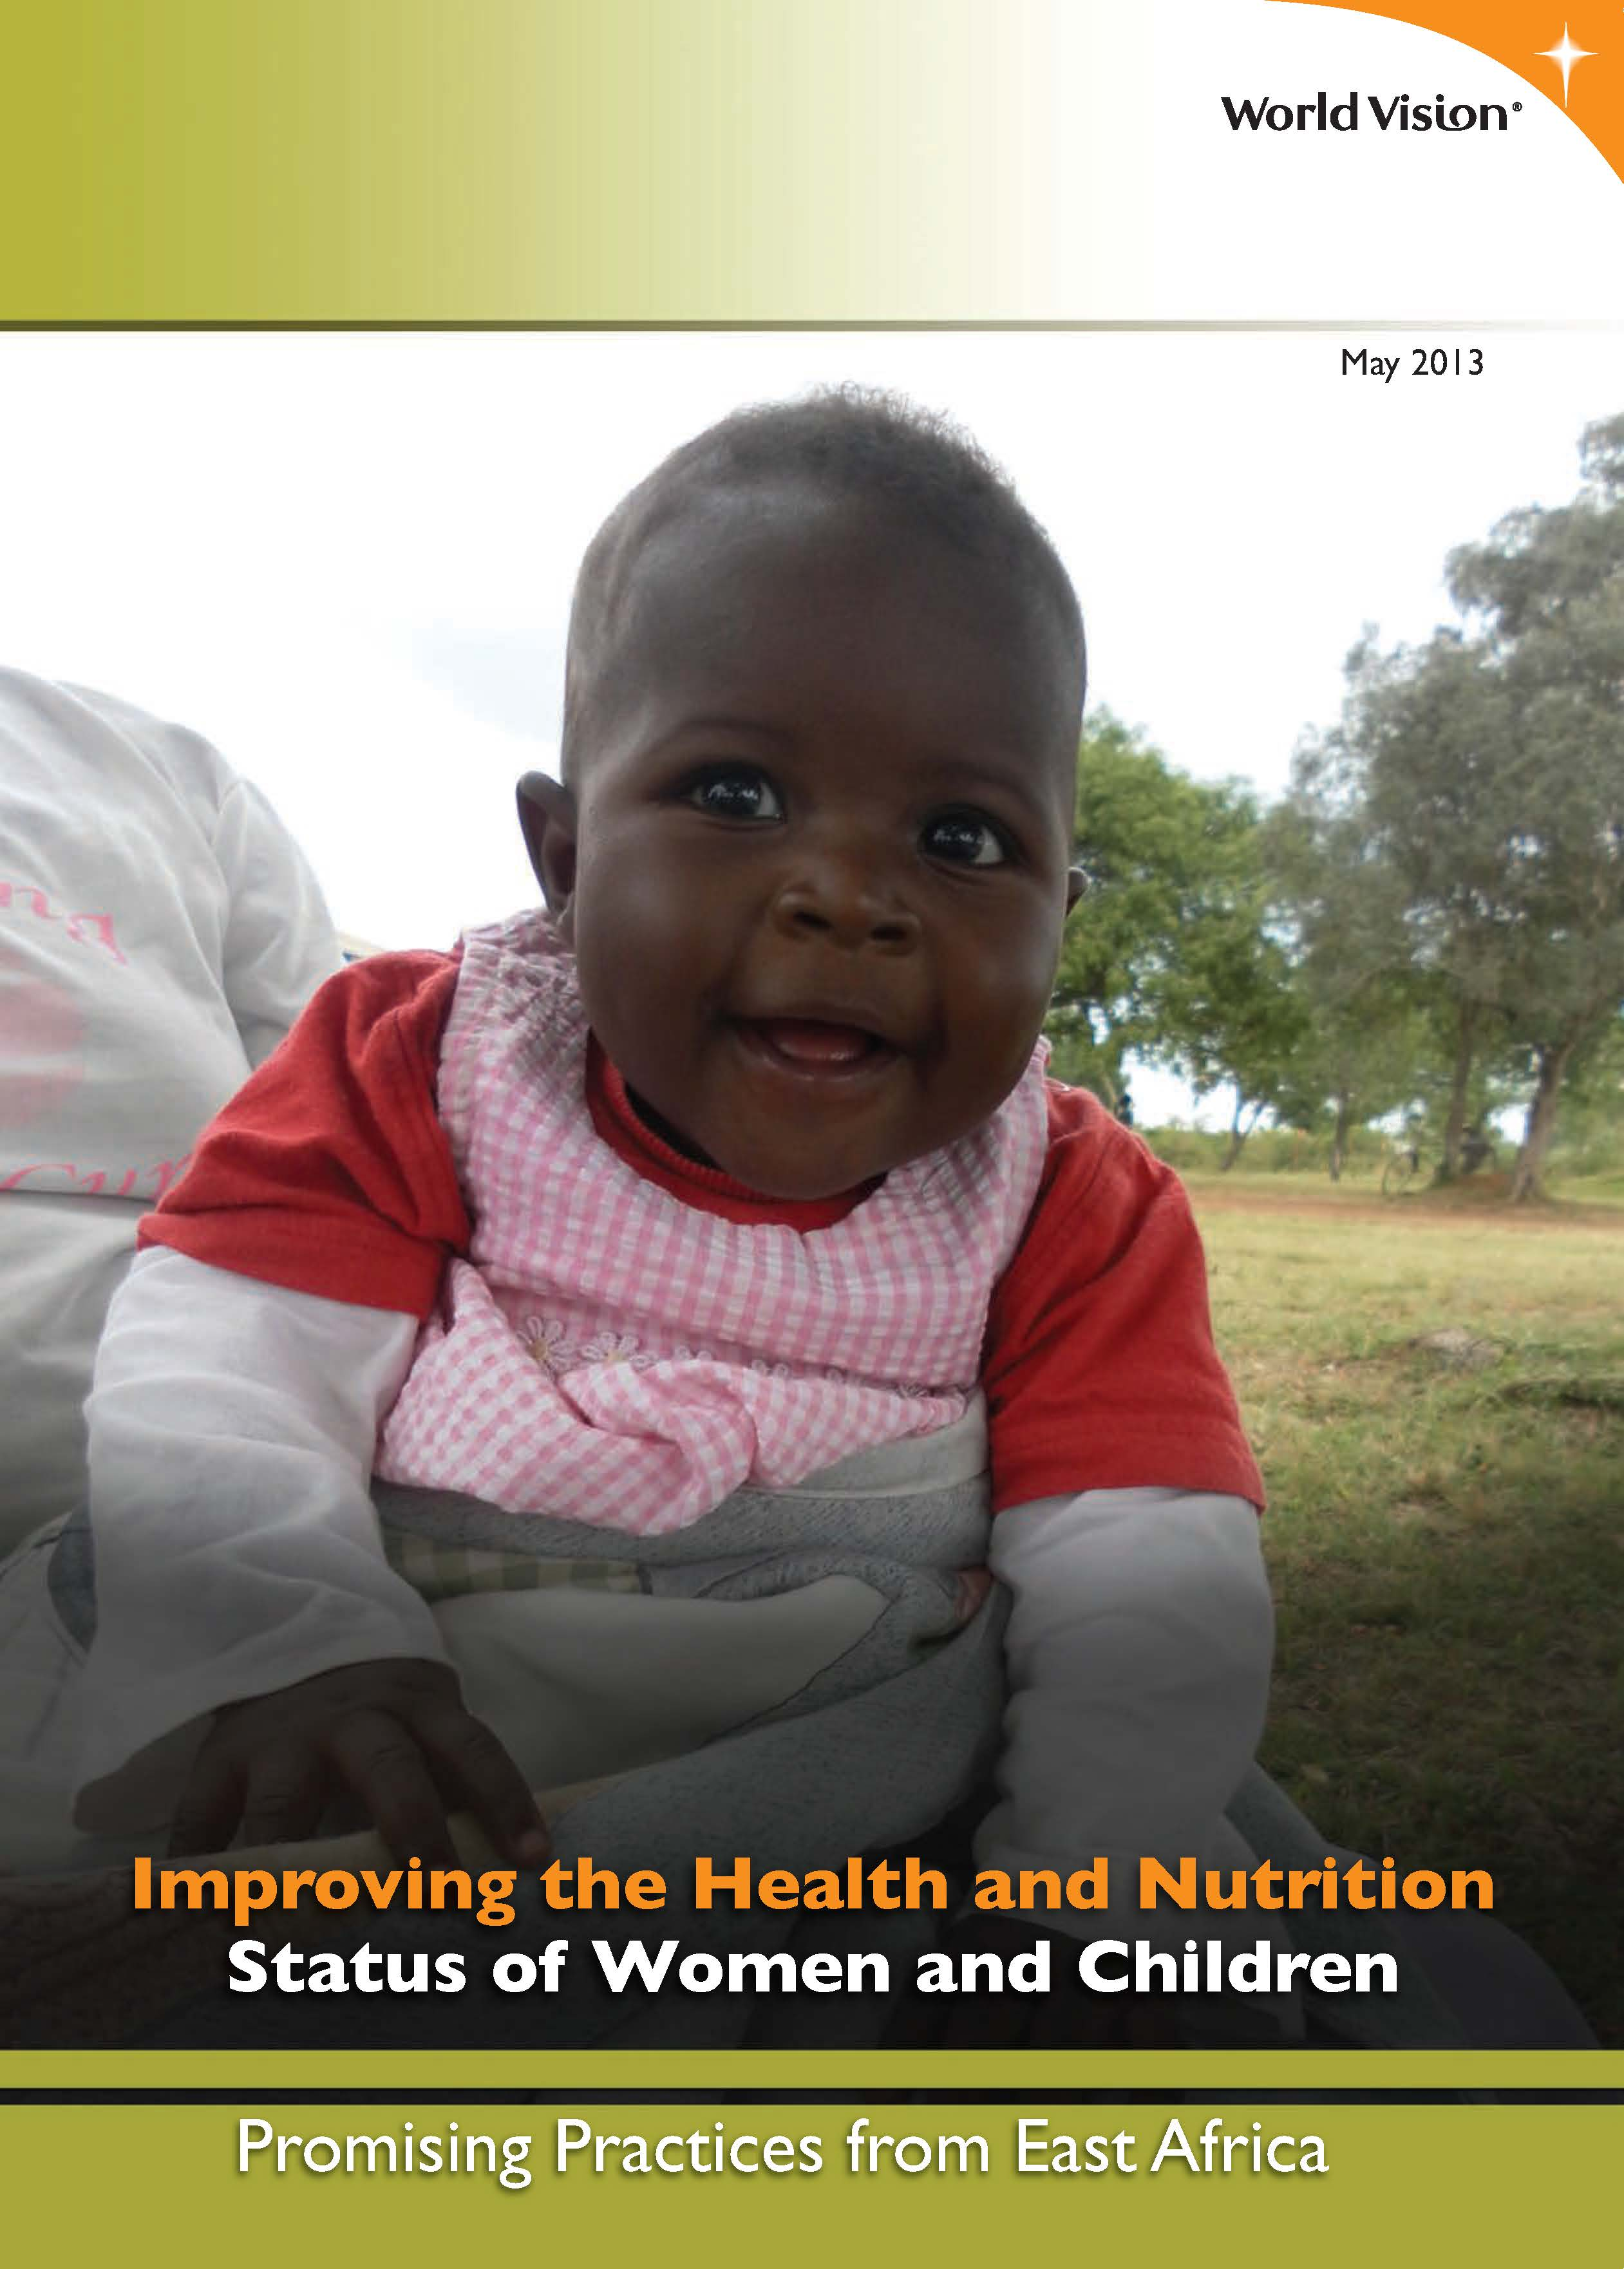 Improving the health and nutrition status of women and children